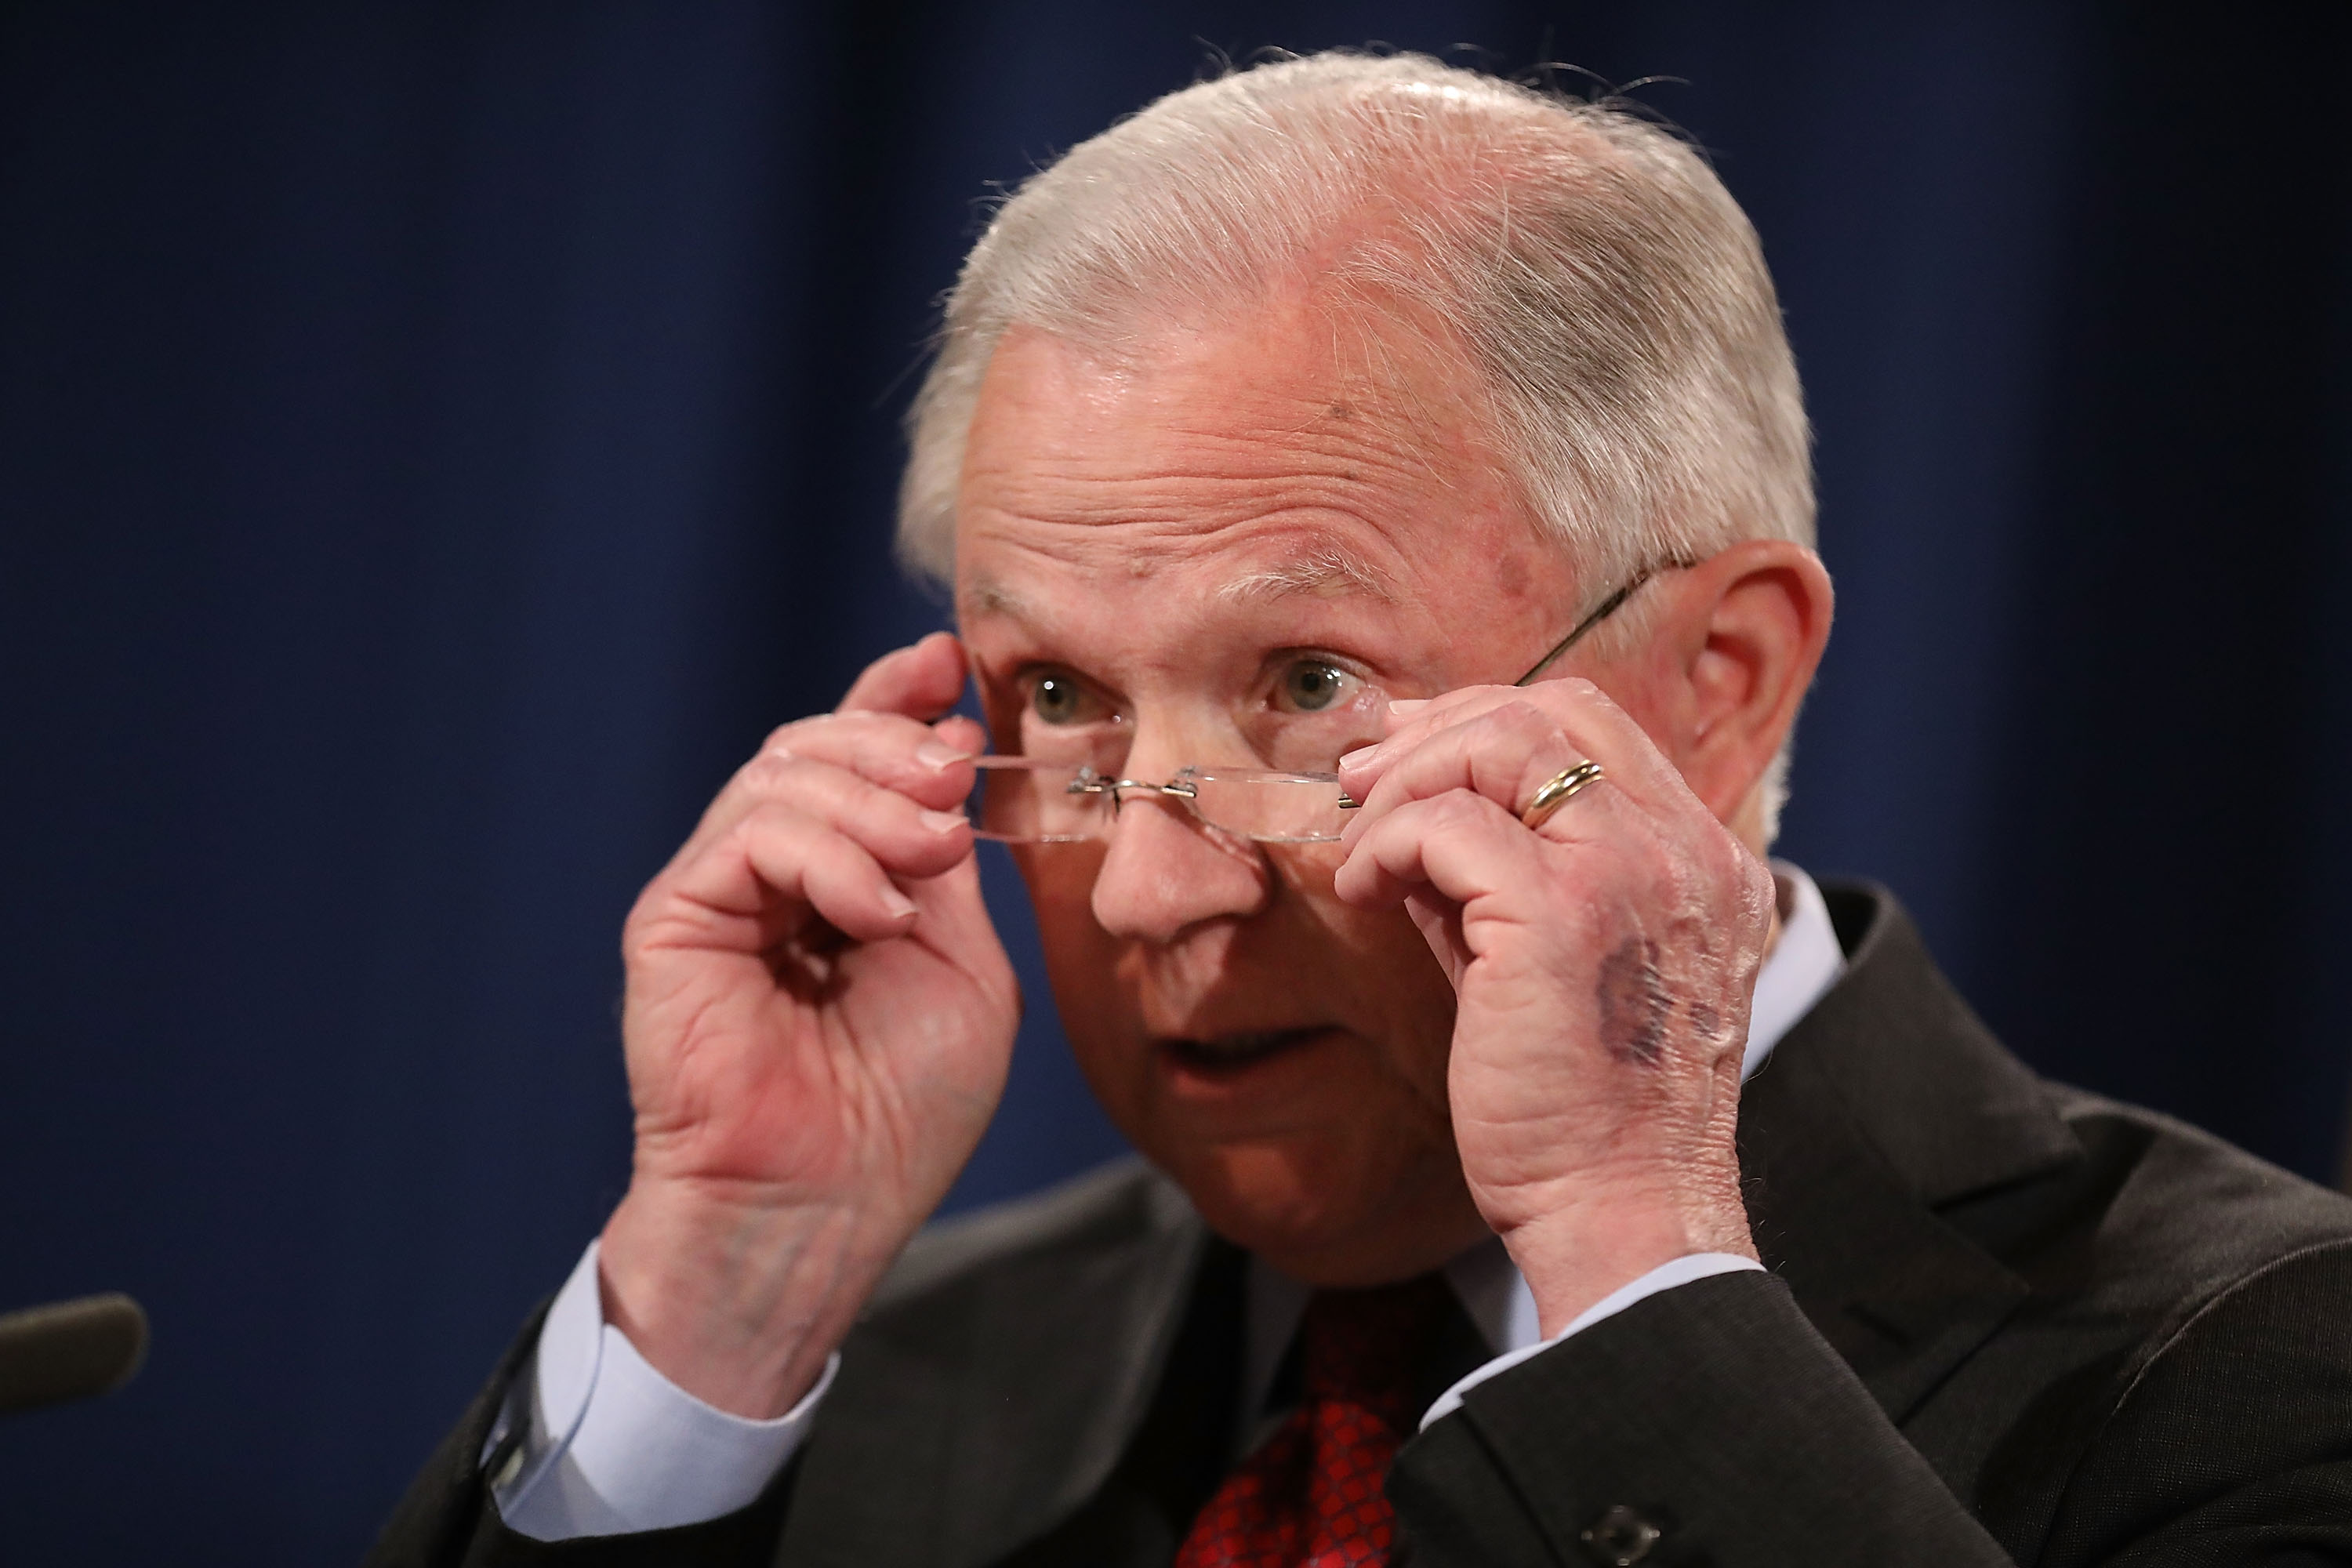 Attorney General Jeff Sessions Holds News Conference Discussing Efforts To Reduce Violent Crime